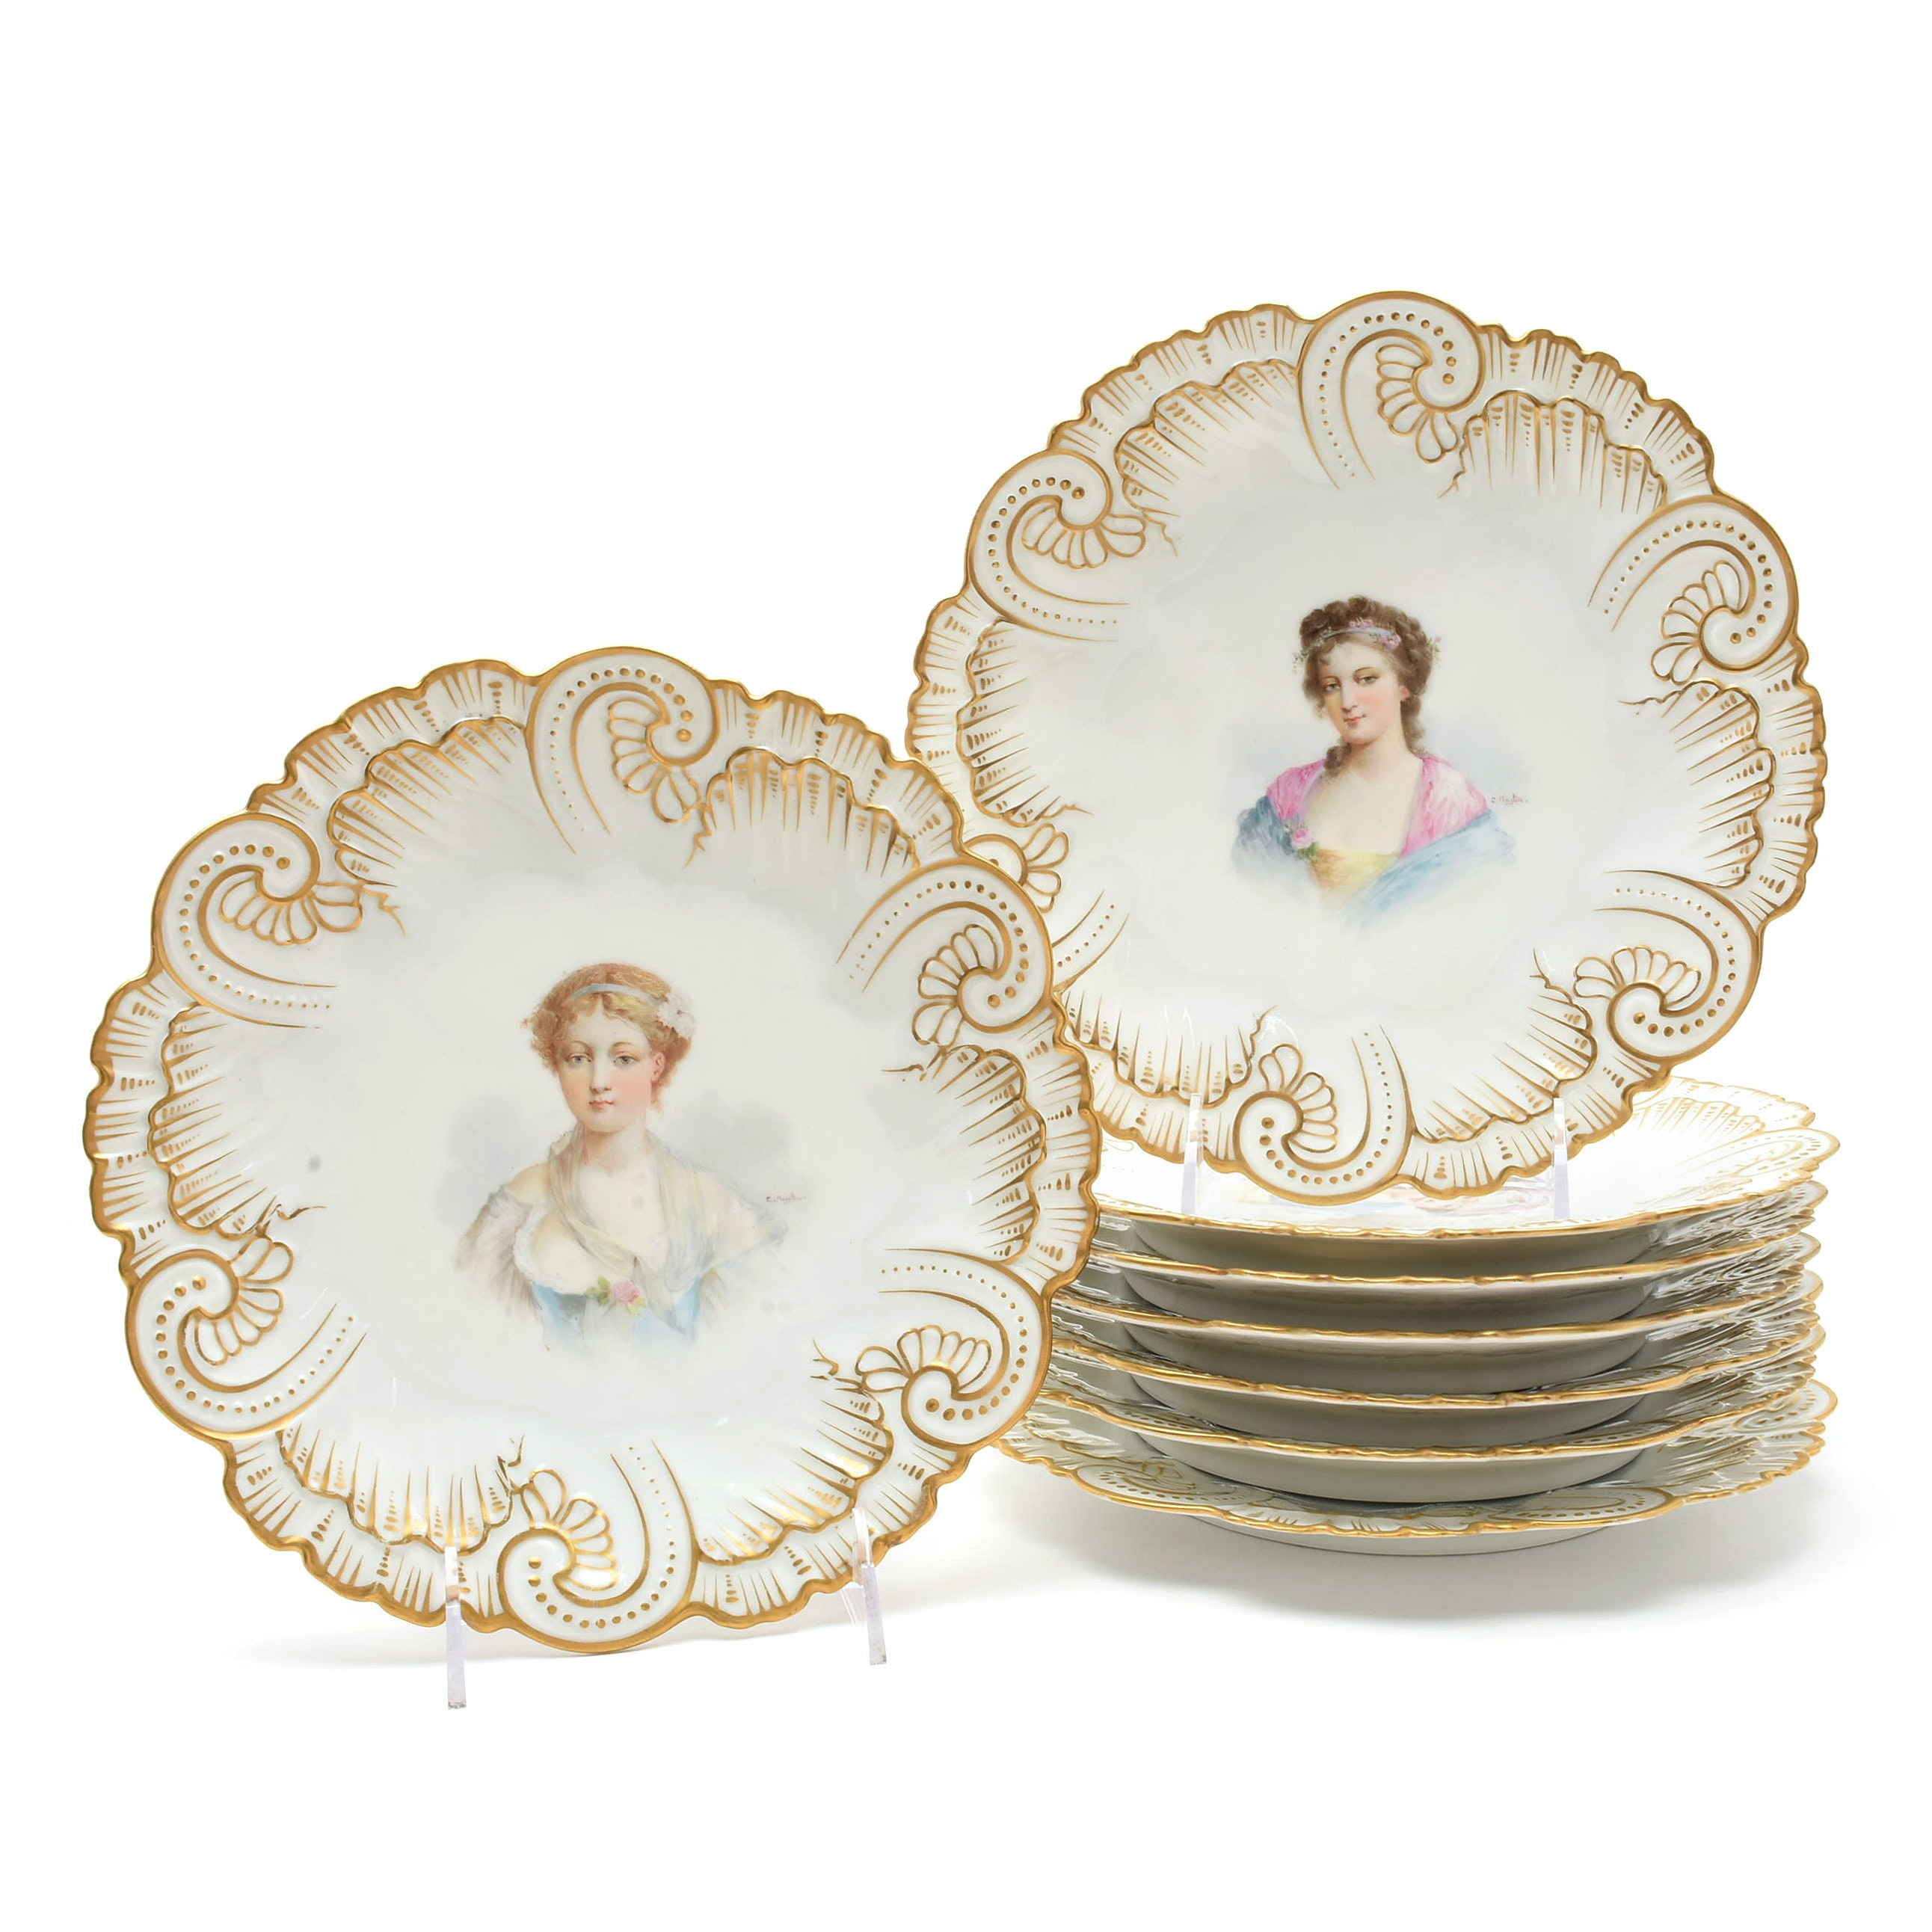 Sevres Style Porcelain Cabinet Plates by Claire Maglin, 19/20th Century